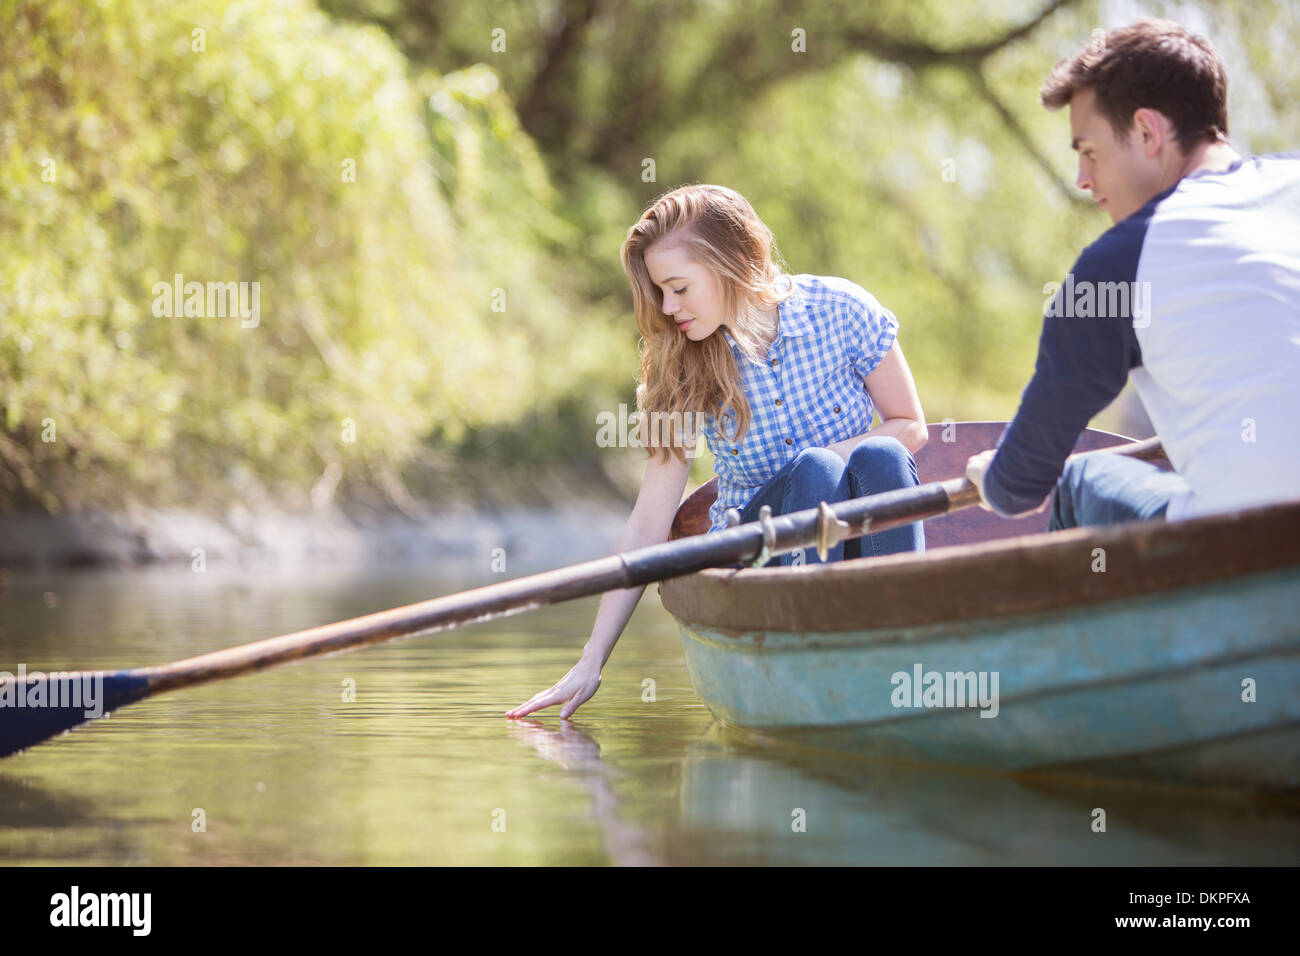 Couple in rowboat on river - Stock Image